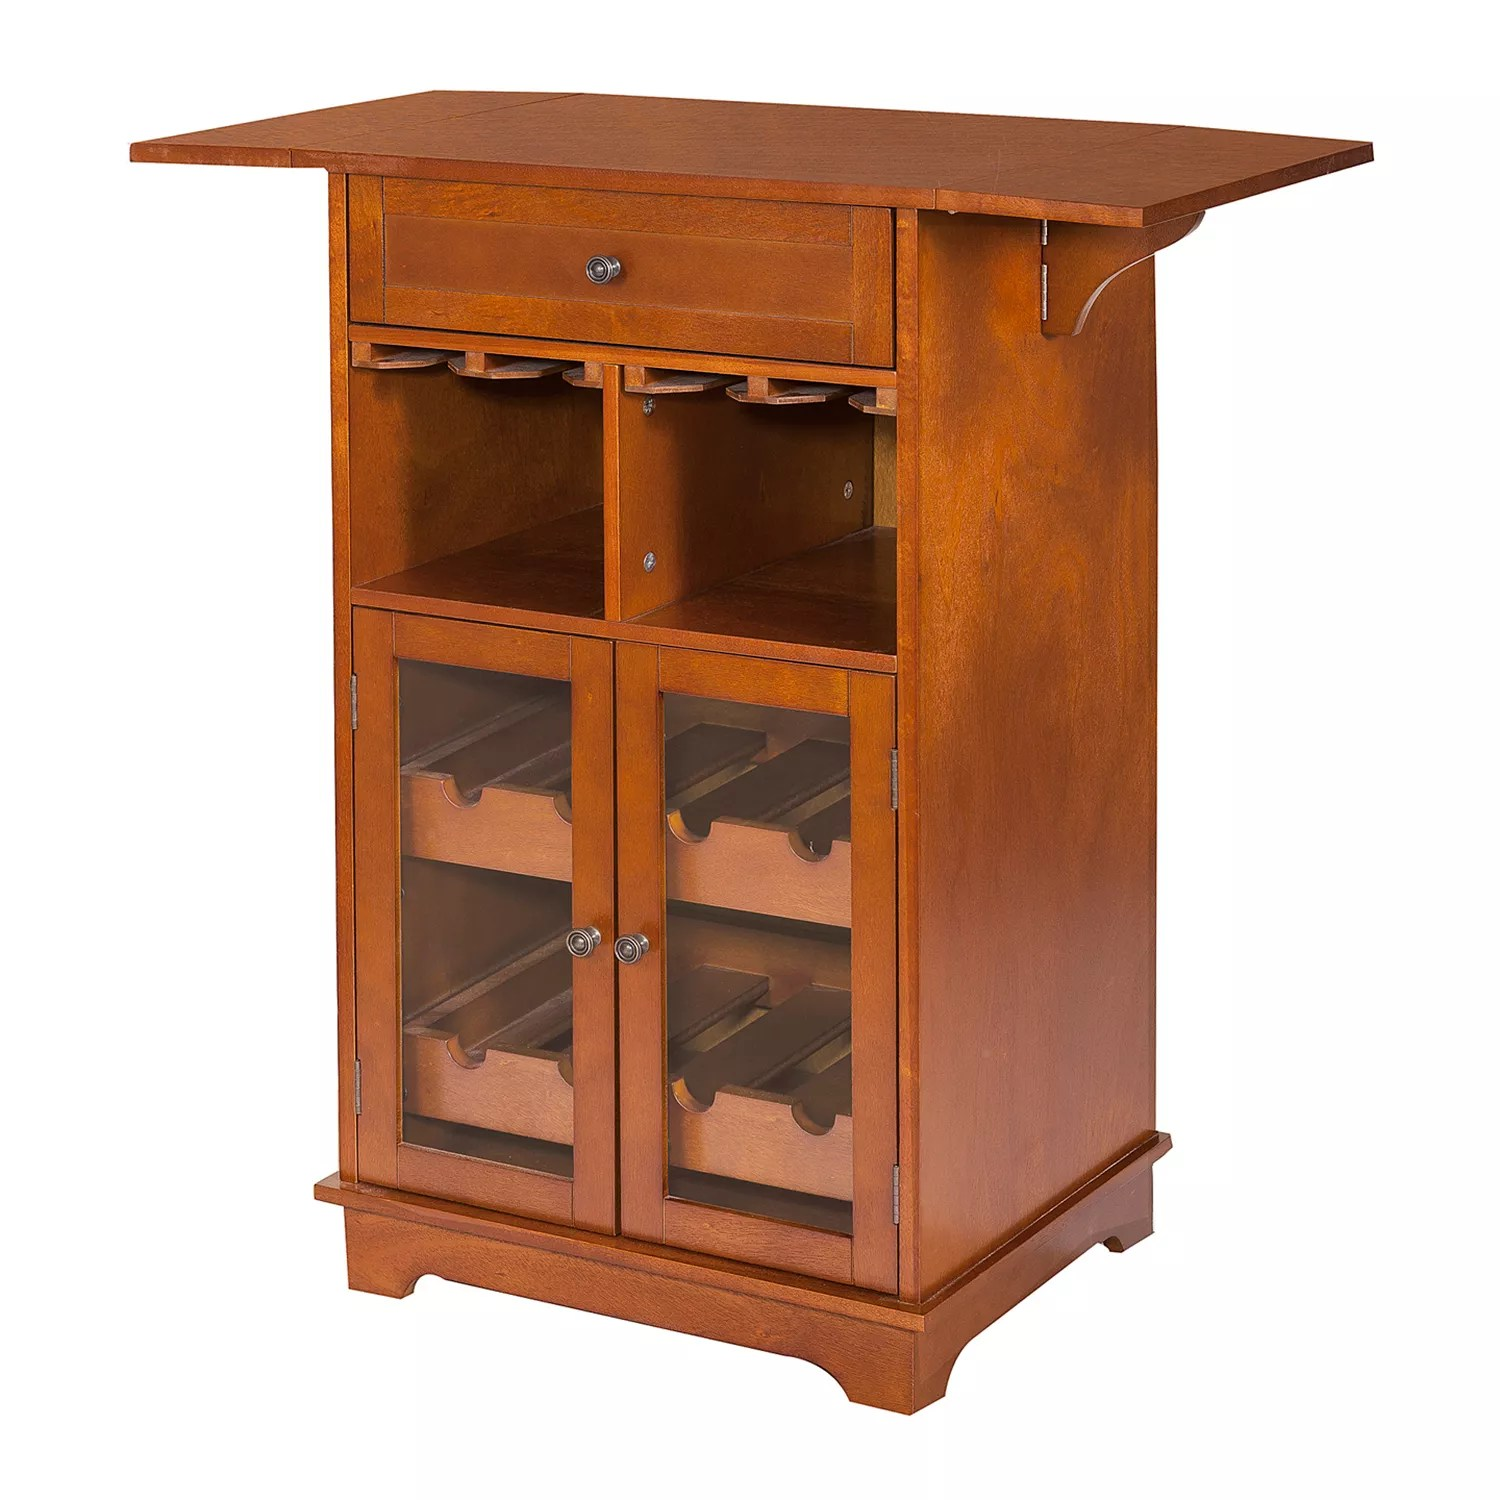 Peoria Storage Peoria 8 Bottle Wine Storage Cabinet